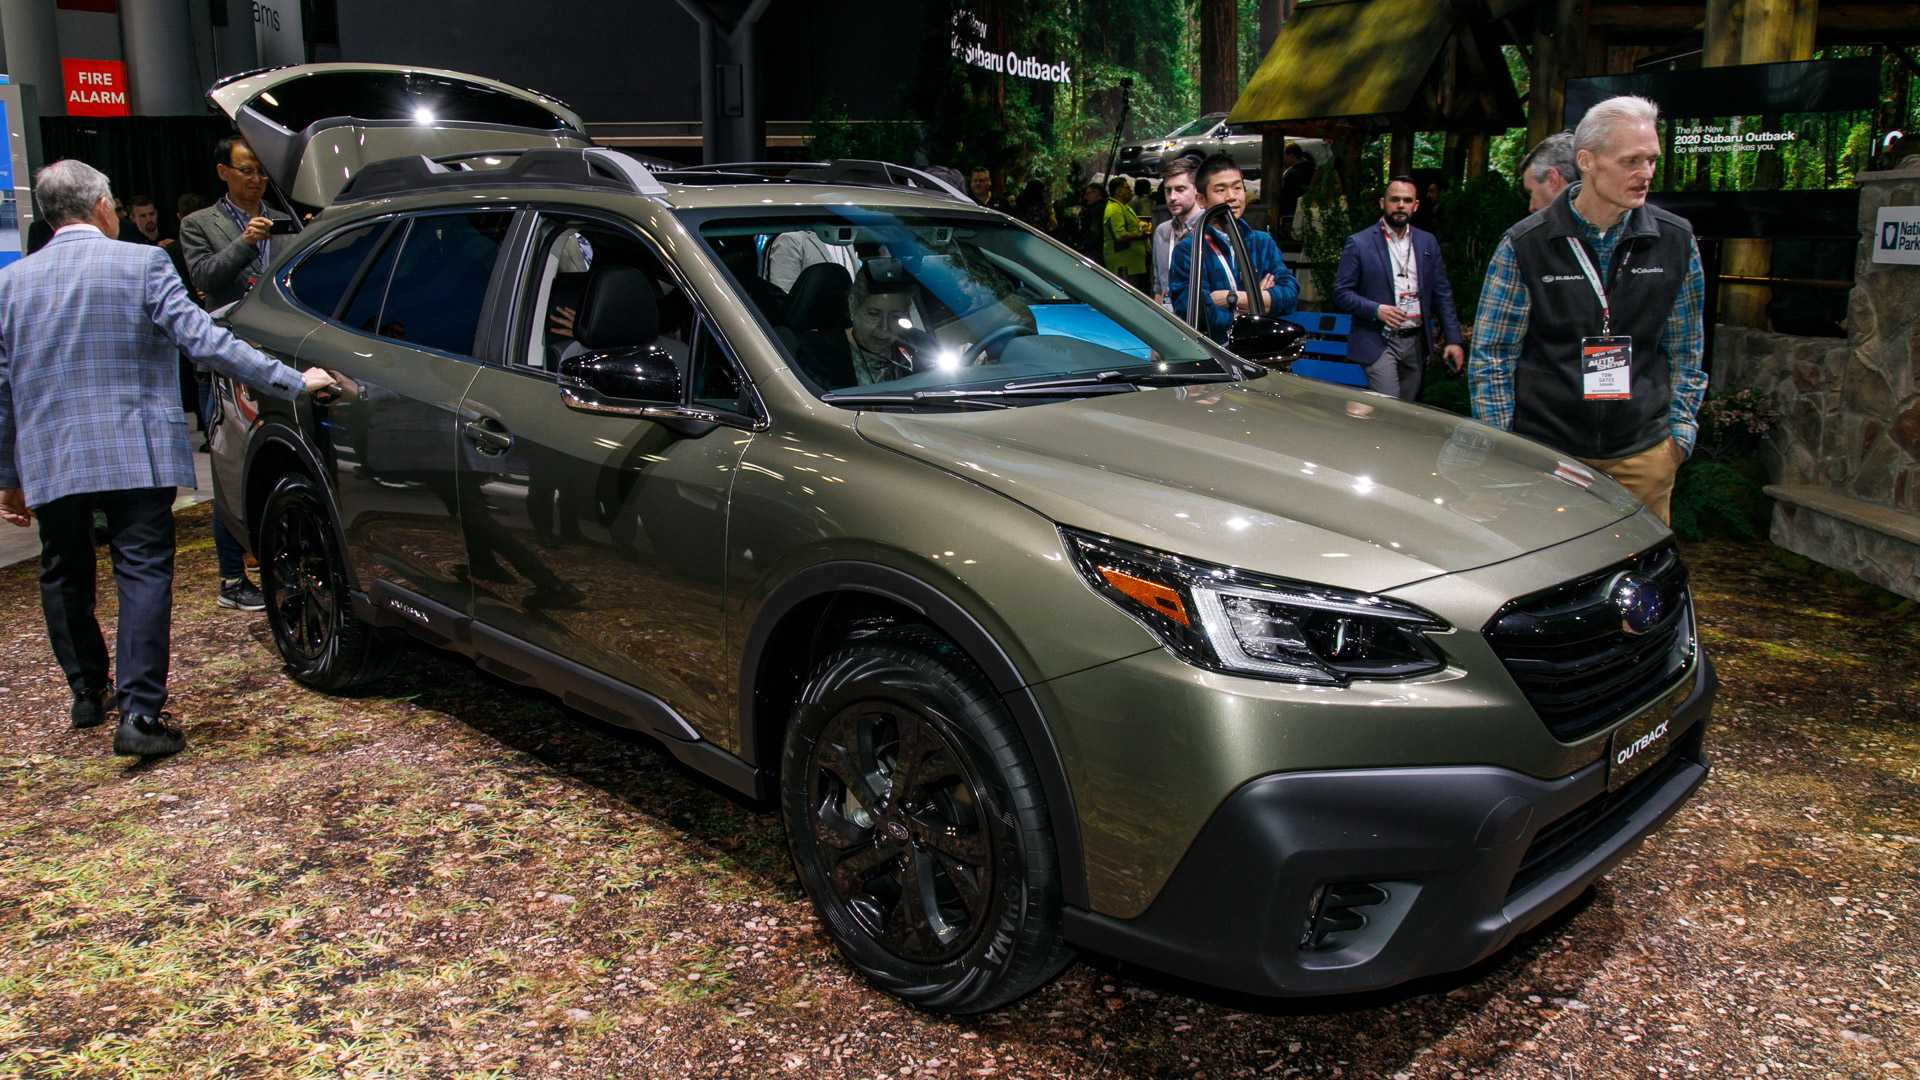 44 Gallery of Subaru Outback 2020 Uk Reviews for Subaru Outback 2020 Uk